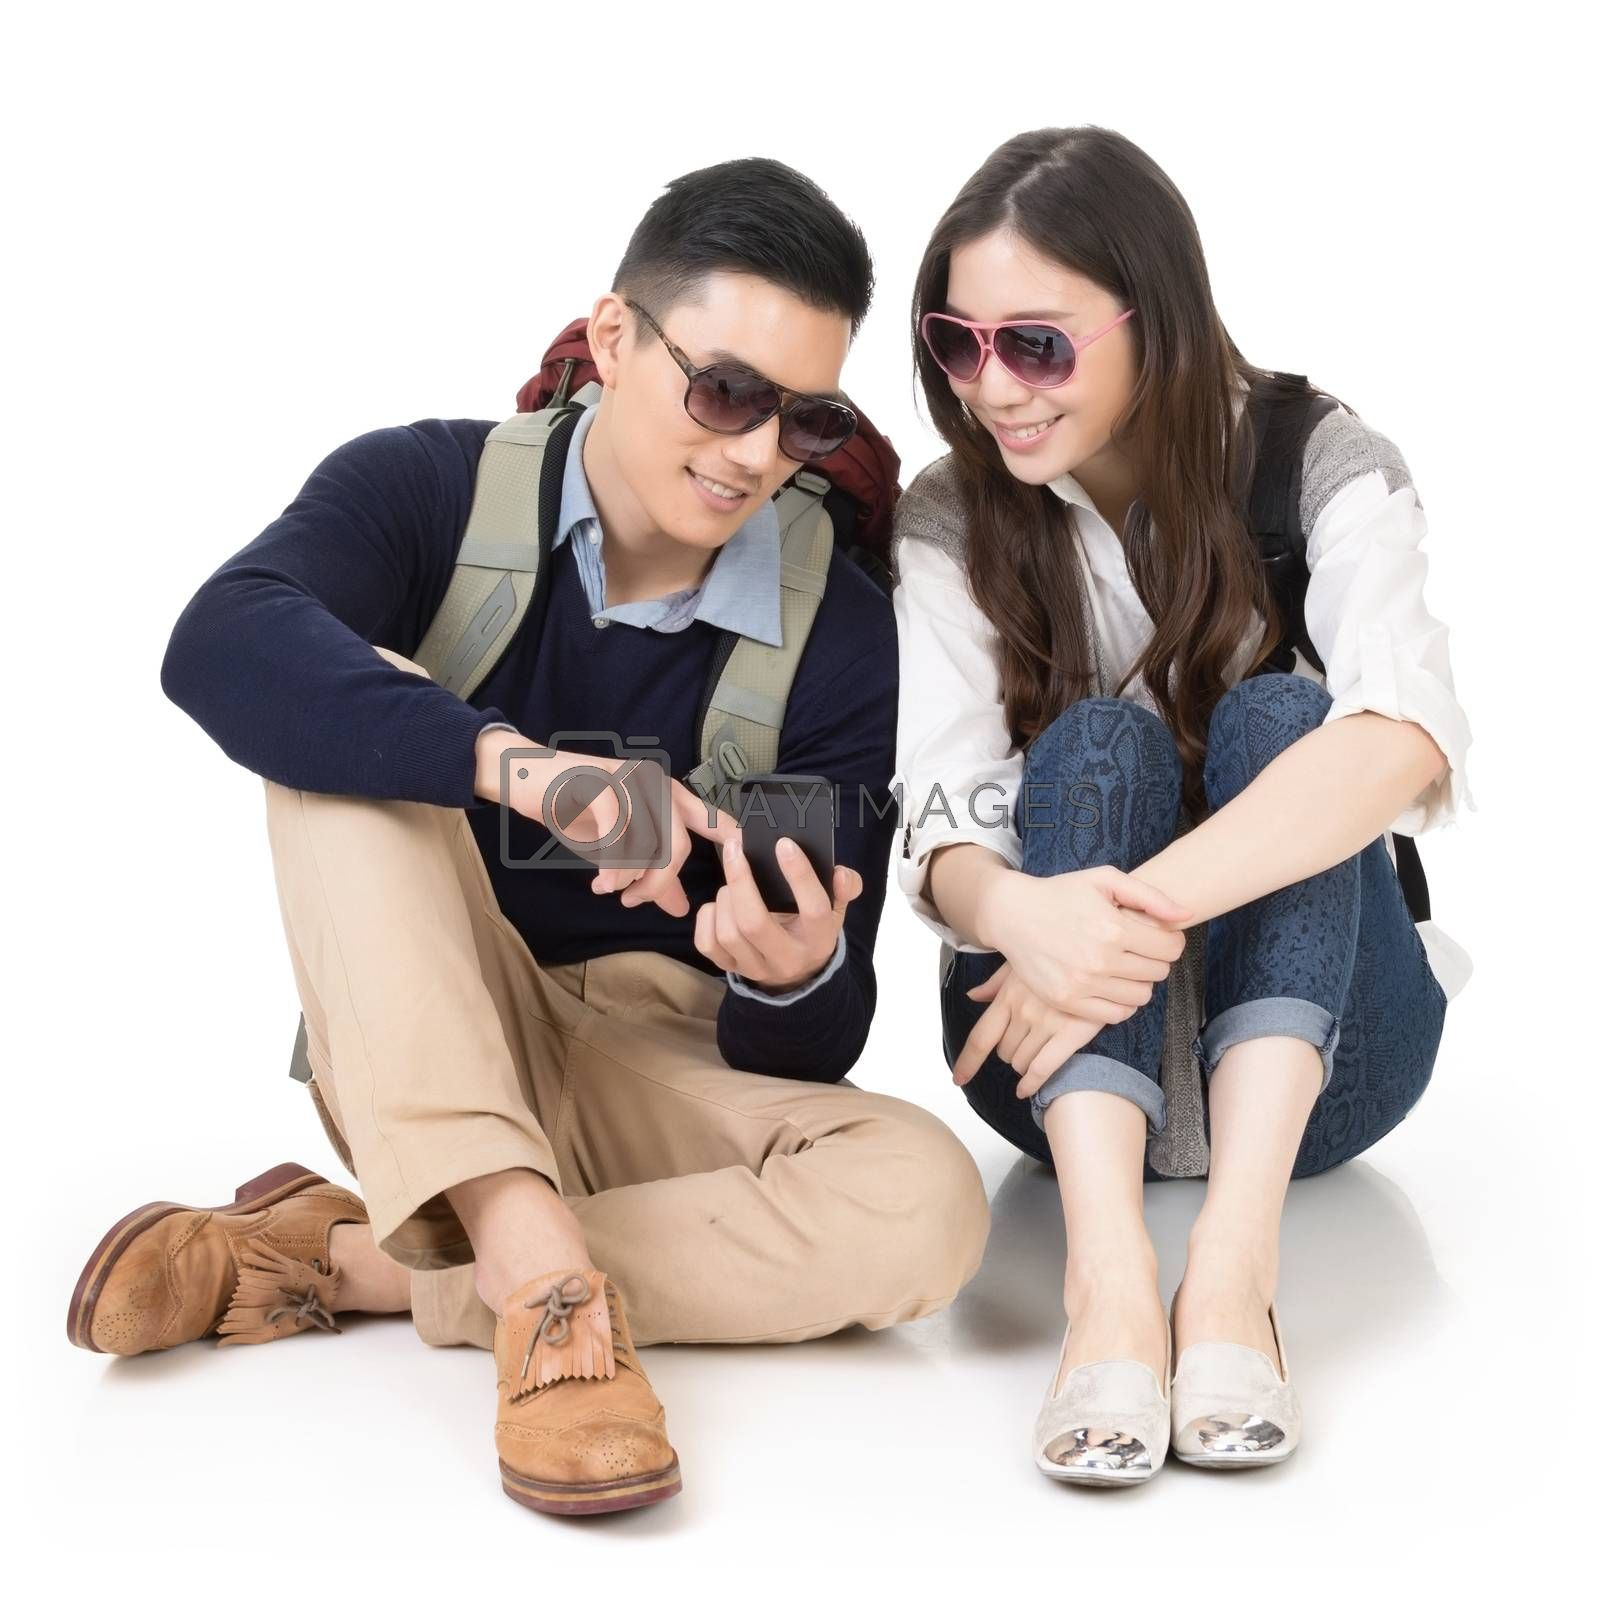 Royalty free image of Asian young couple traveling and using mobile phone by elwynn